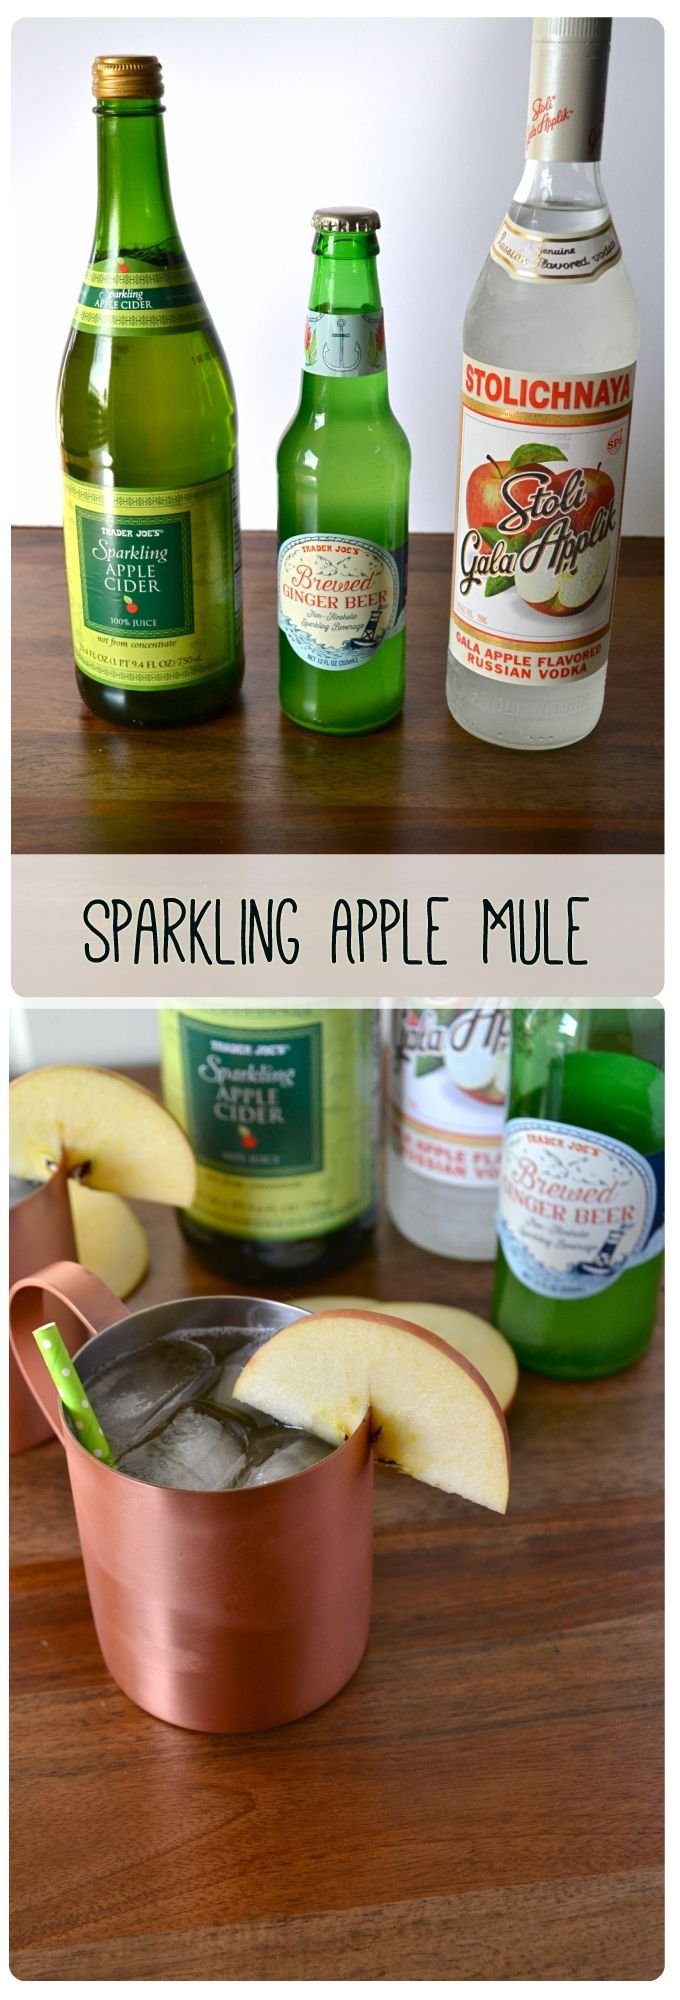 Sparkling Apple Mule! 3 ingredients for the perfect fall cocktail.